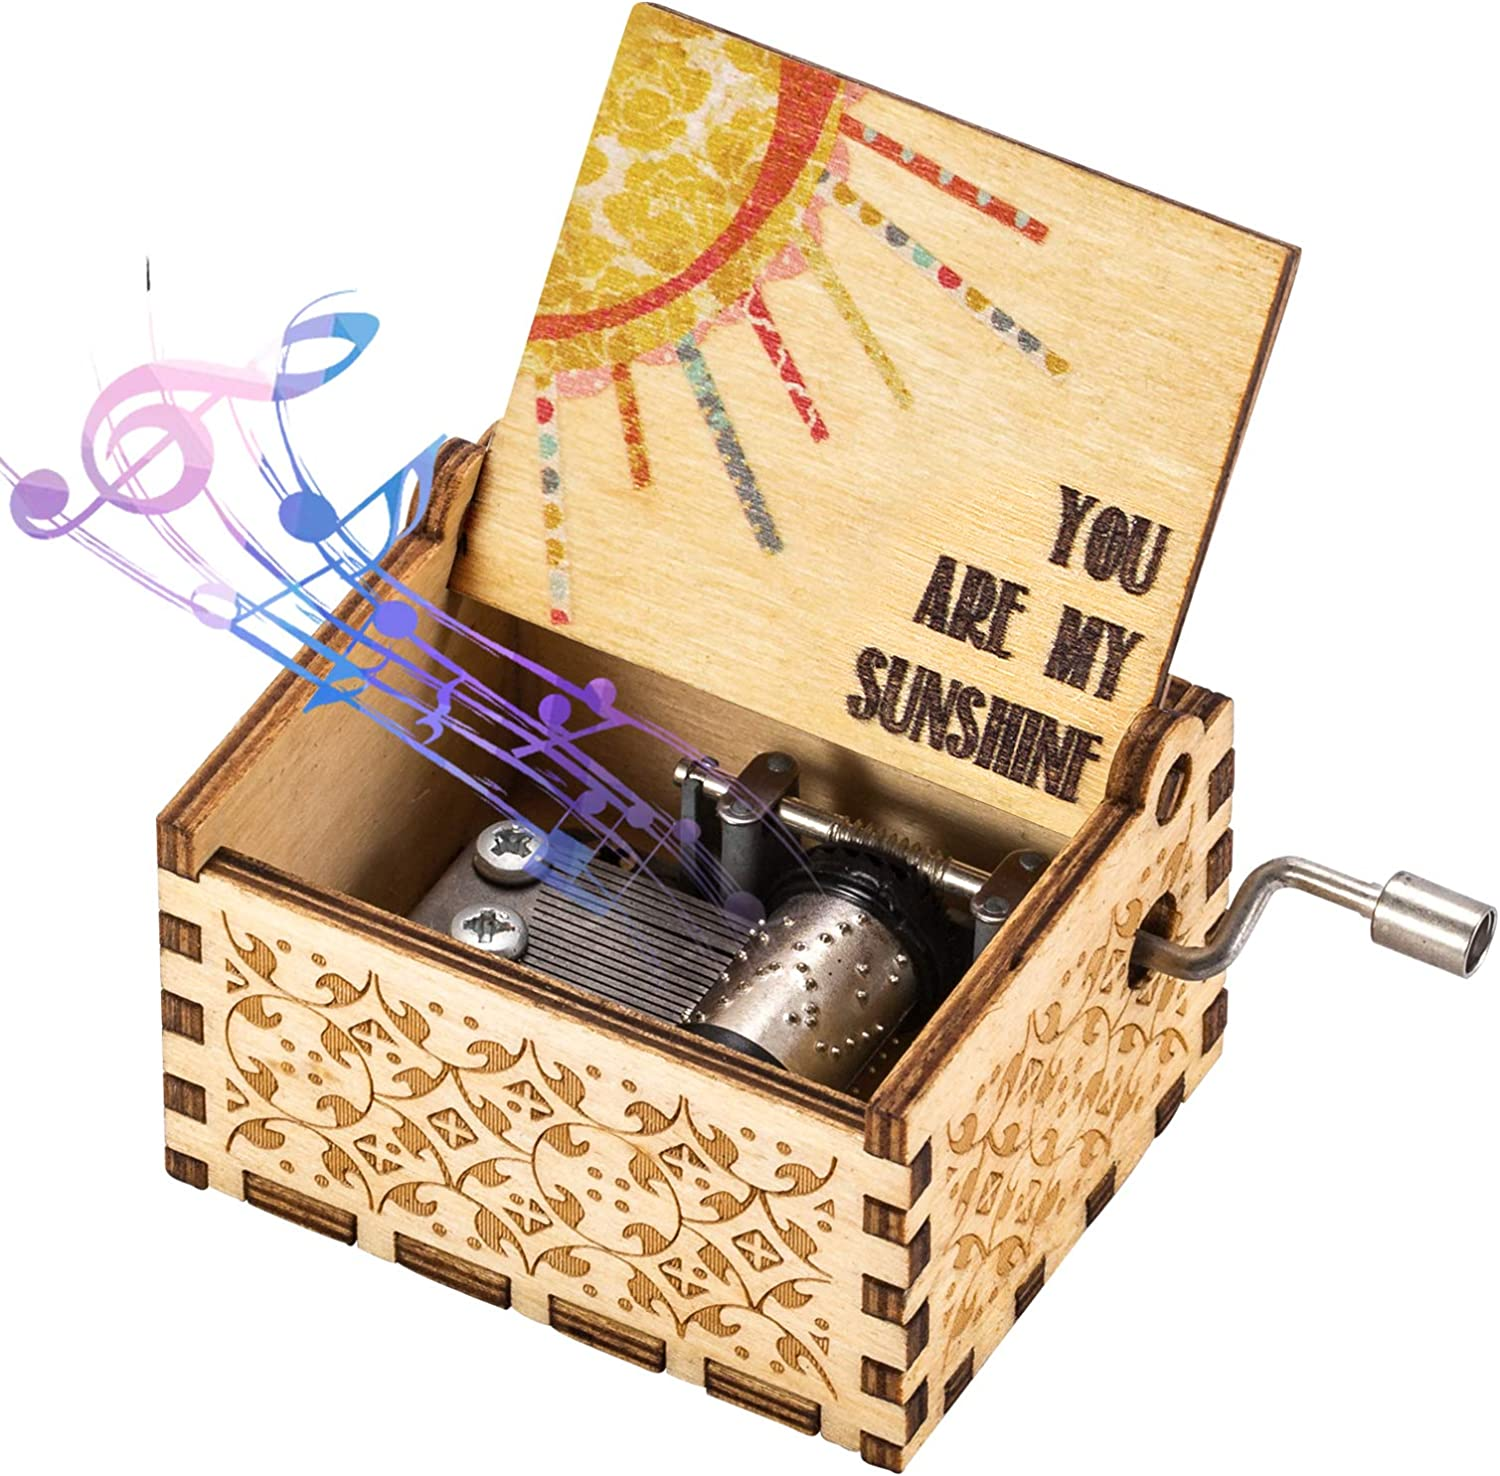 ASZKJ Wood Music Box, You are My Sunshine Manual Wooden Laser Engraved Vintage Music Box Great Gift for Birthday, Christmas, Valentine's Day